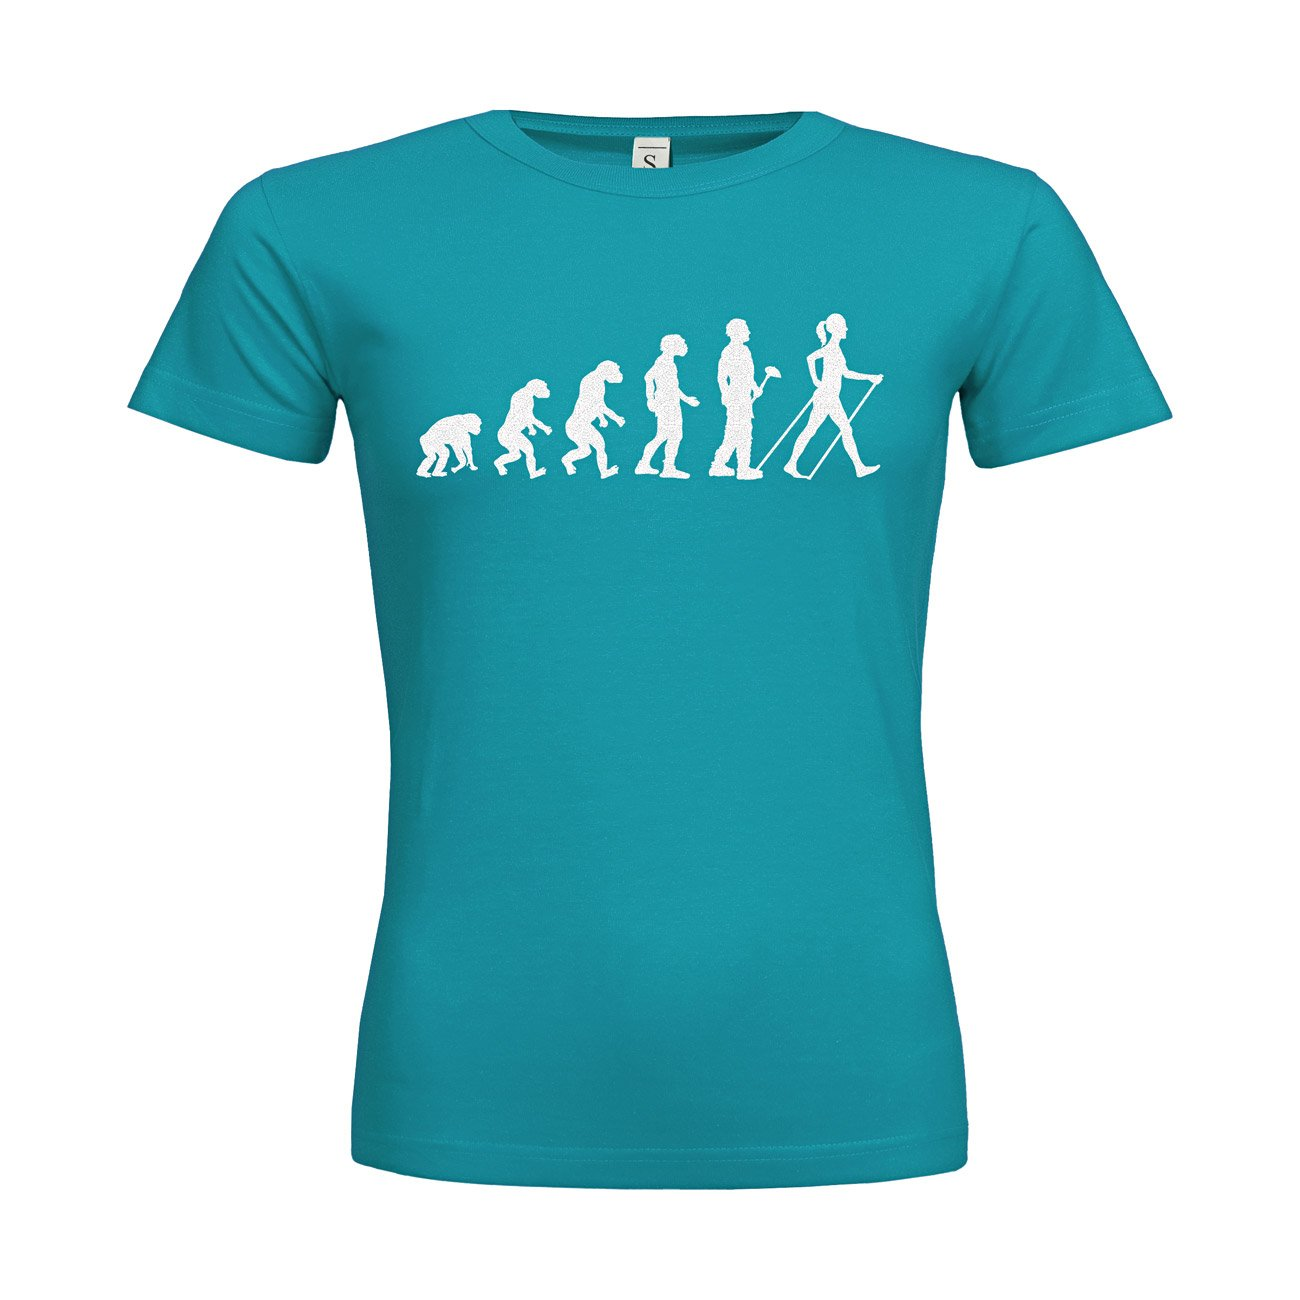 MDMA Frauen T-Shirt Classic Evolutionstheorie Nordic Walking Frau N14-mdma-ftc00378